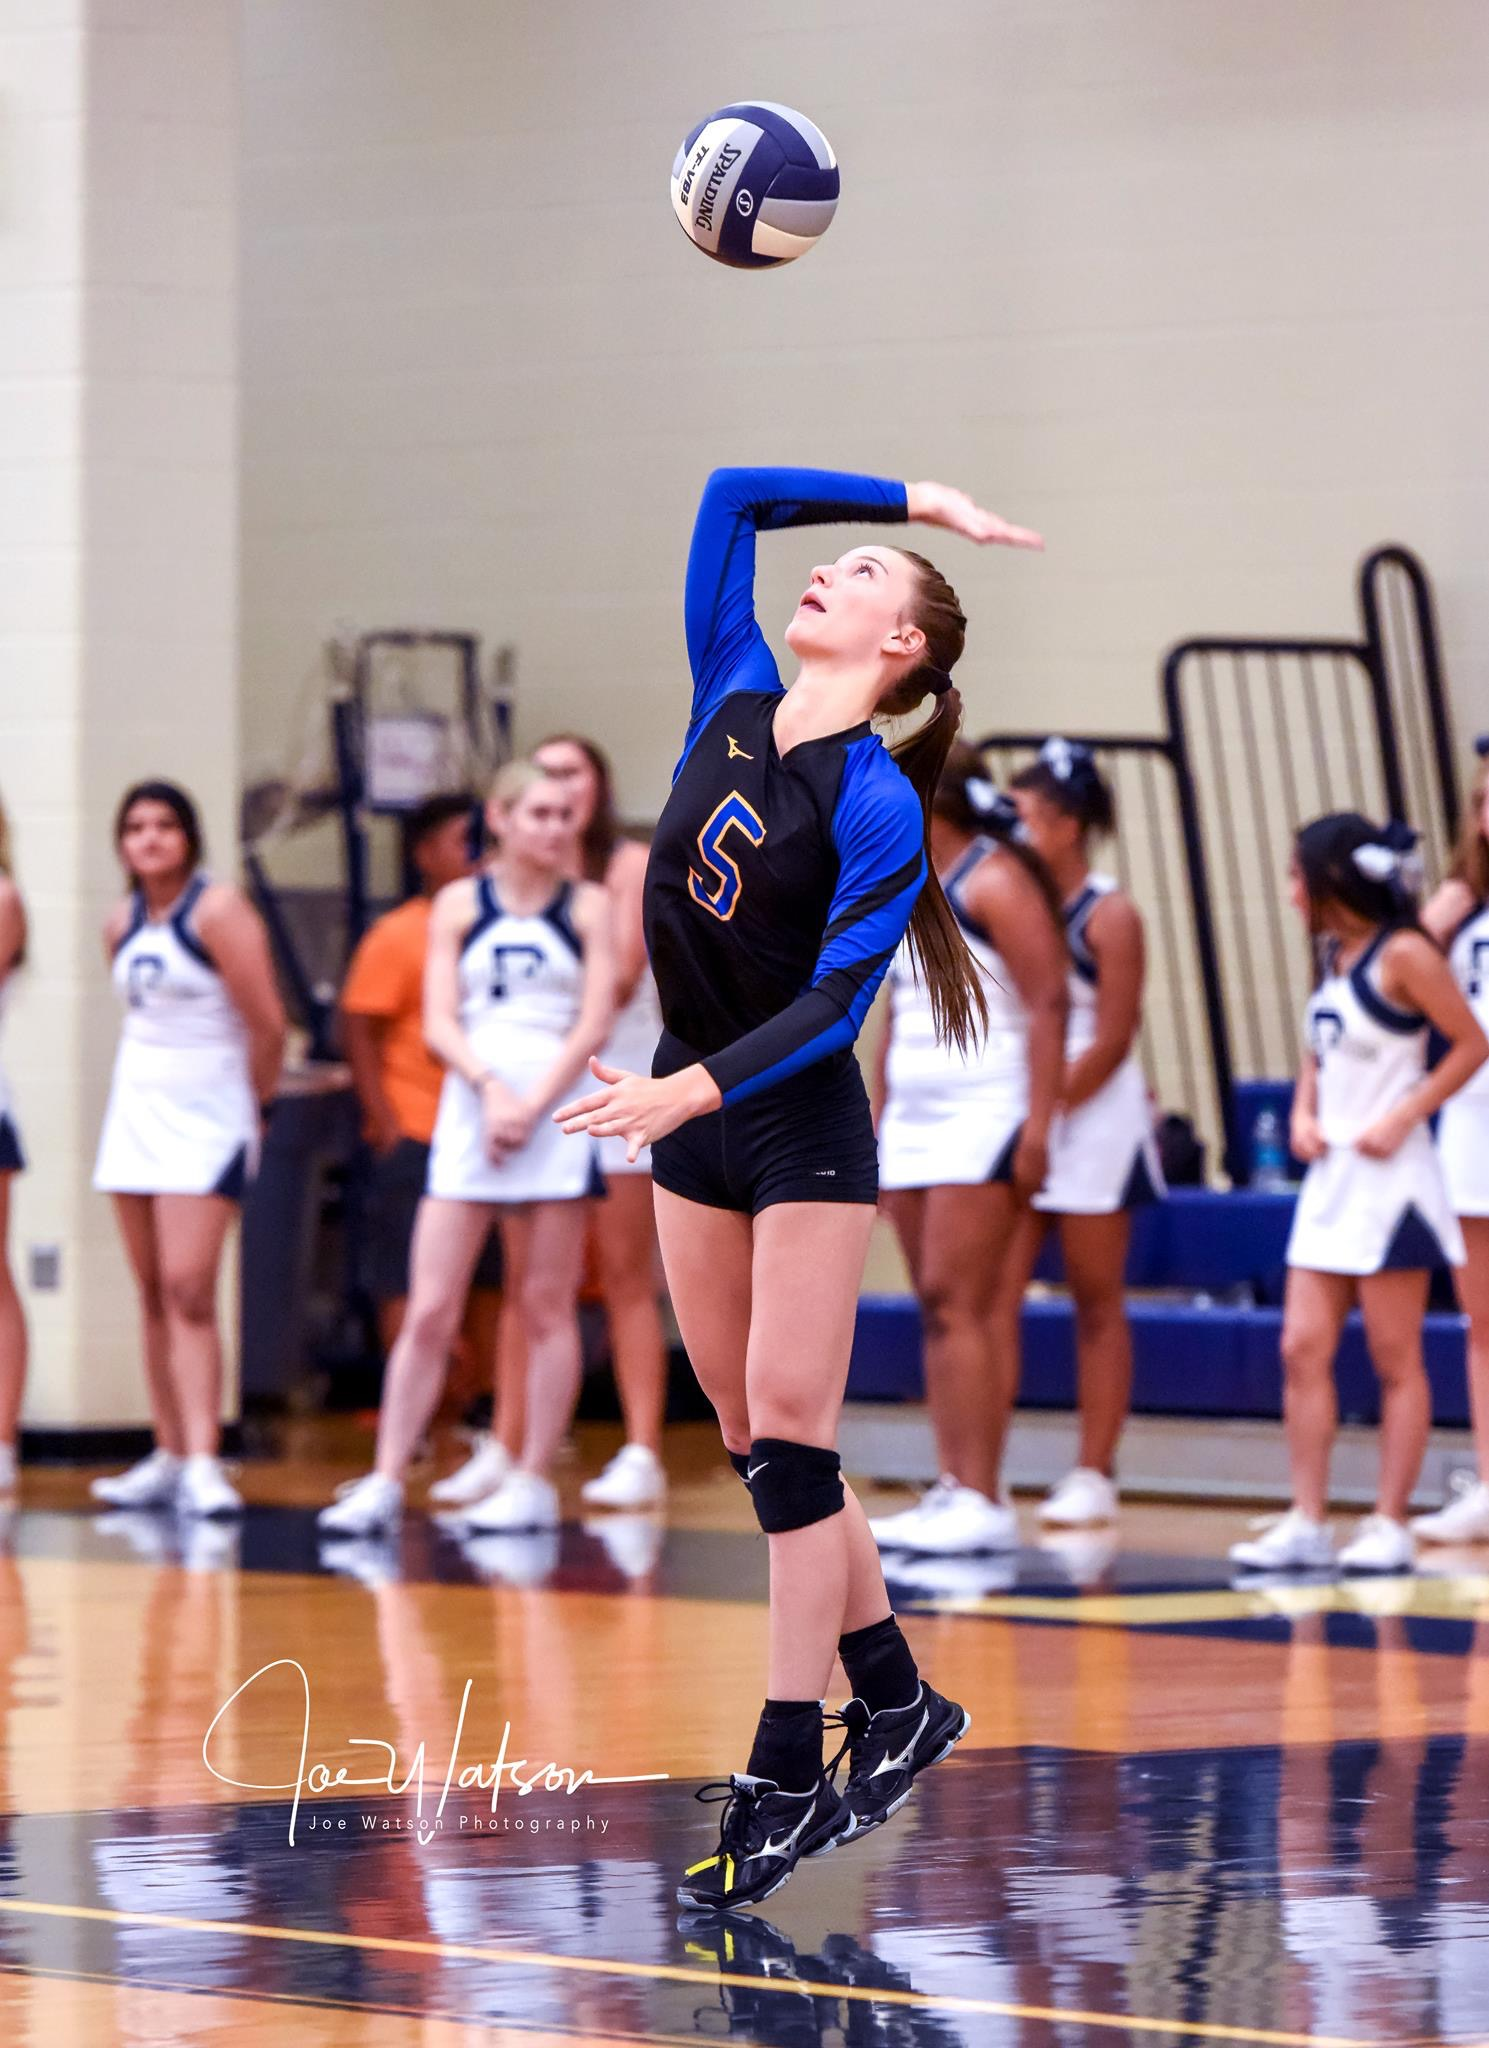 (Photo by Joe Watson) Macy Richardson serving the ball against Paris High.